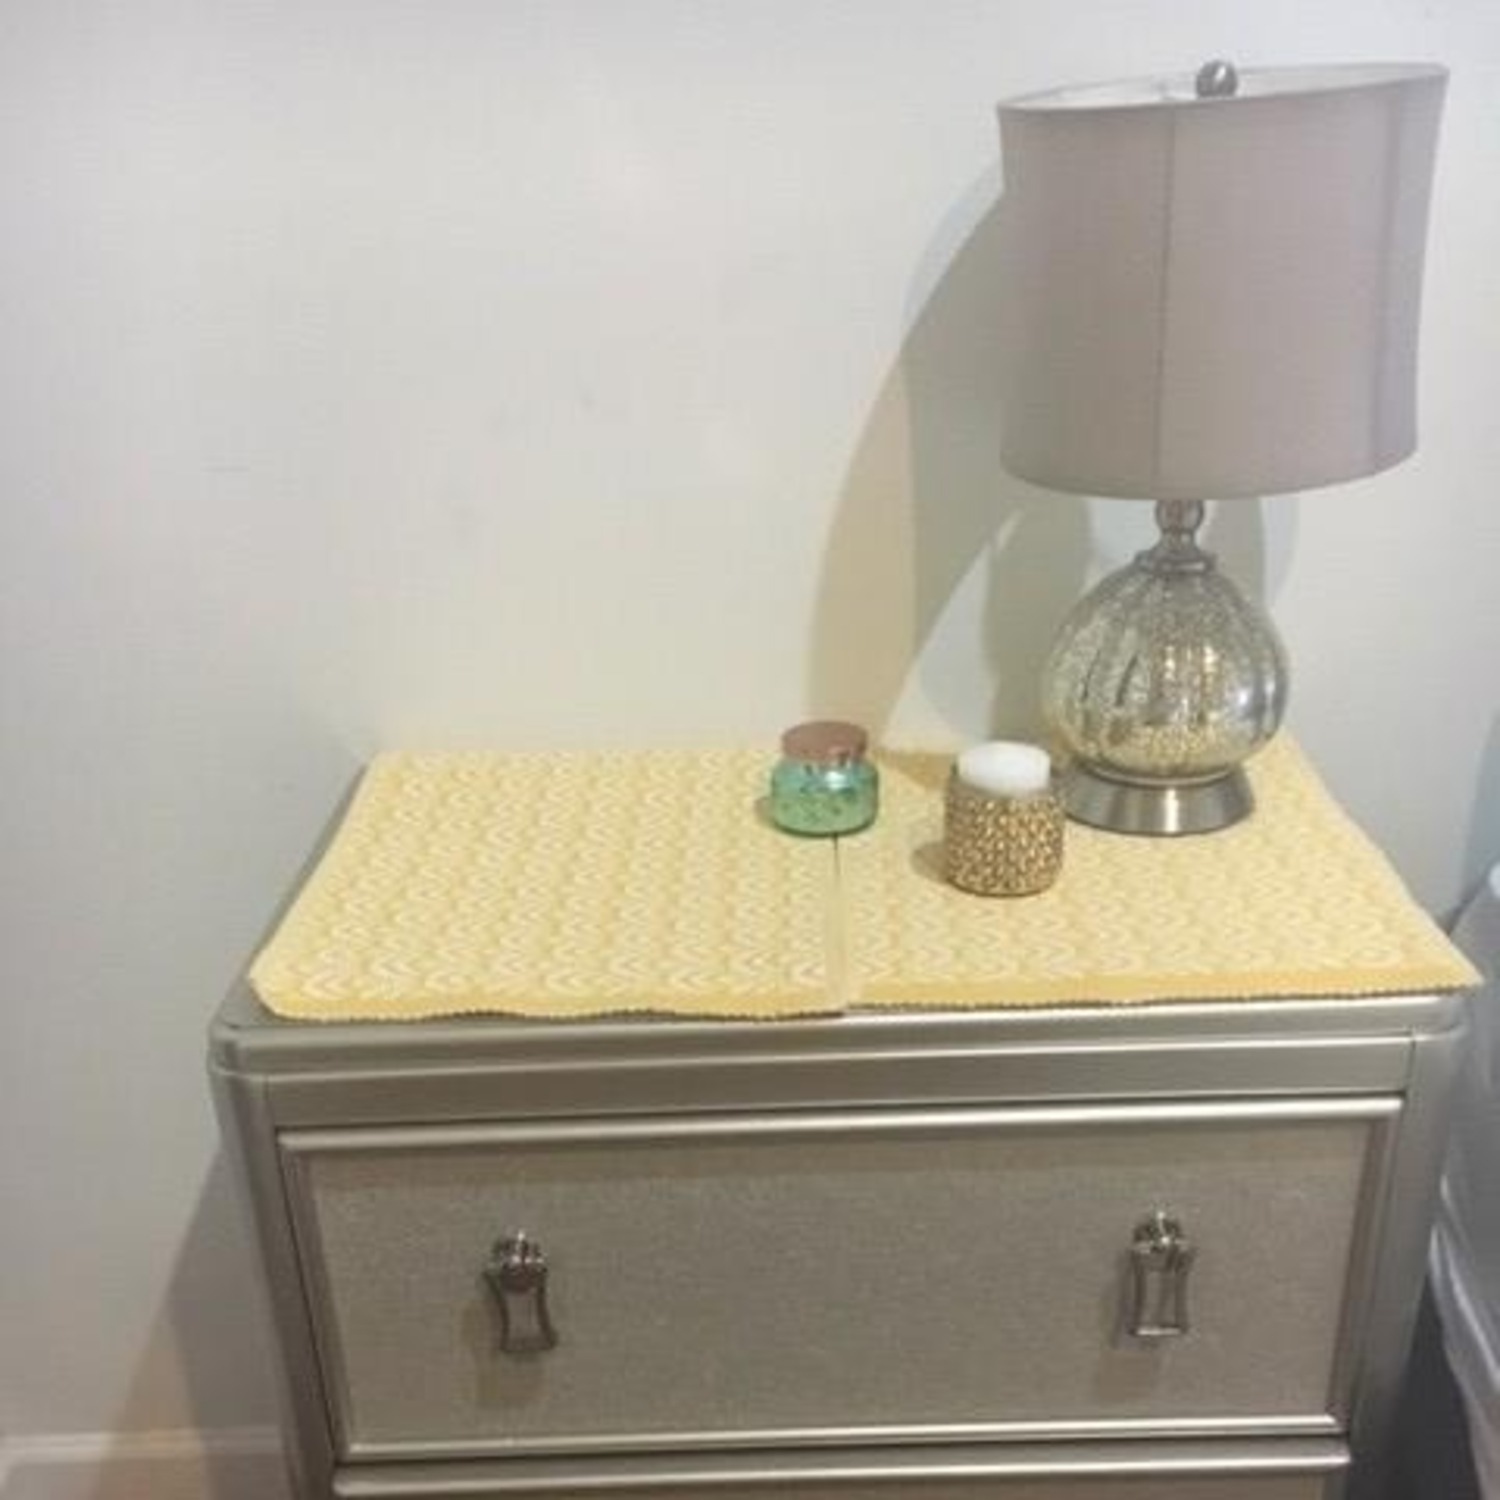 Bob's Discount Furniture Silver Nightstand - image-2